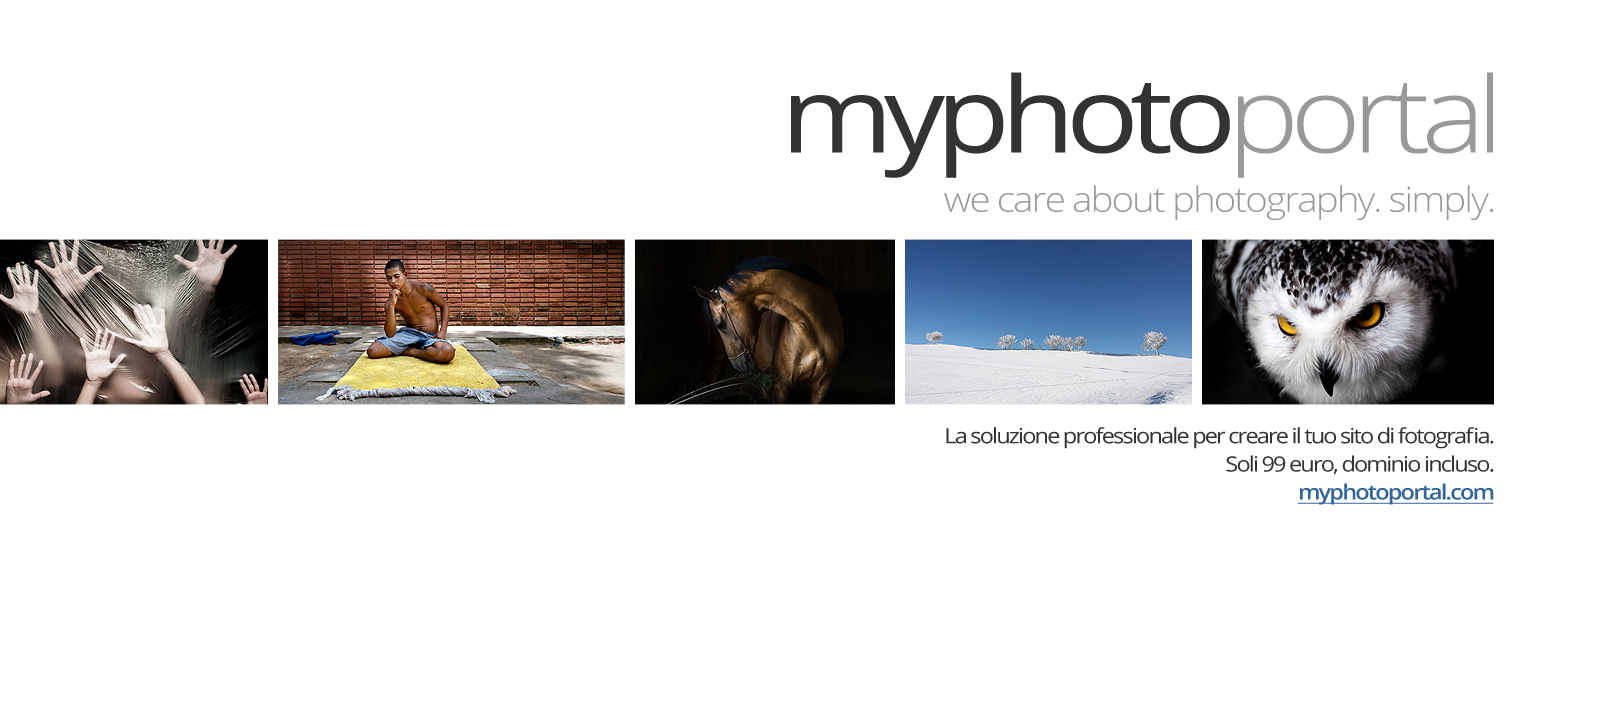 Myphotoportal.com - we care about photography. simply.